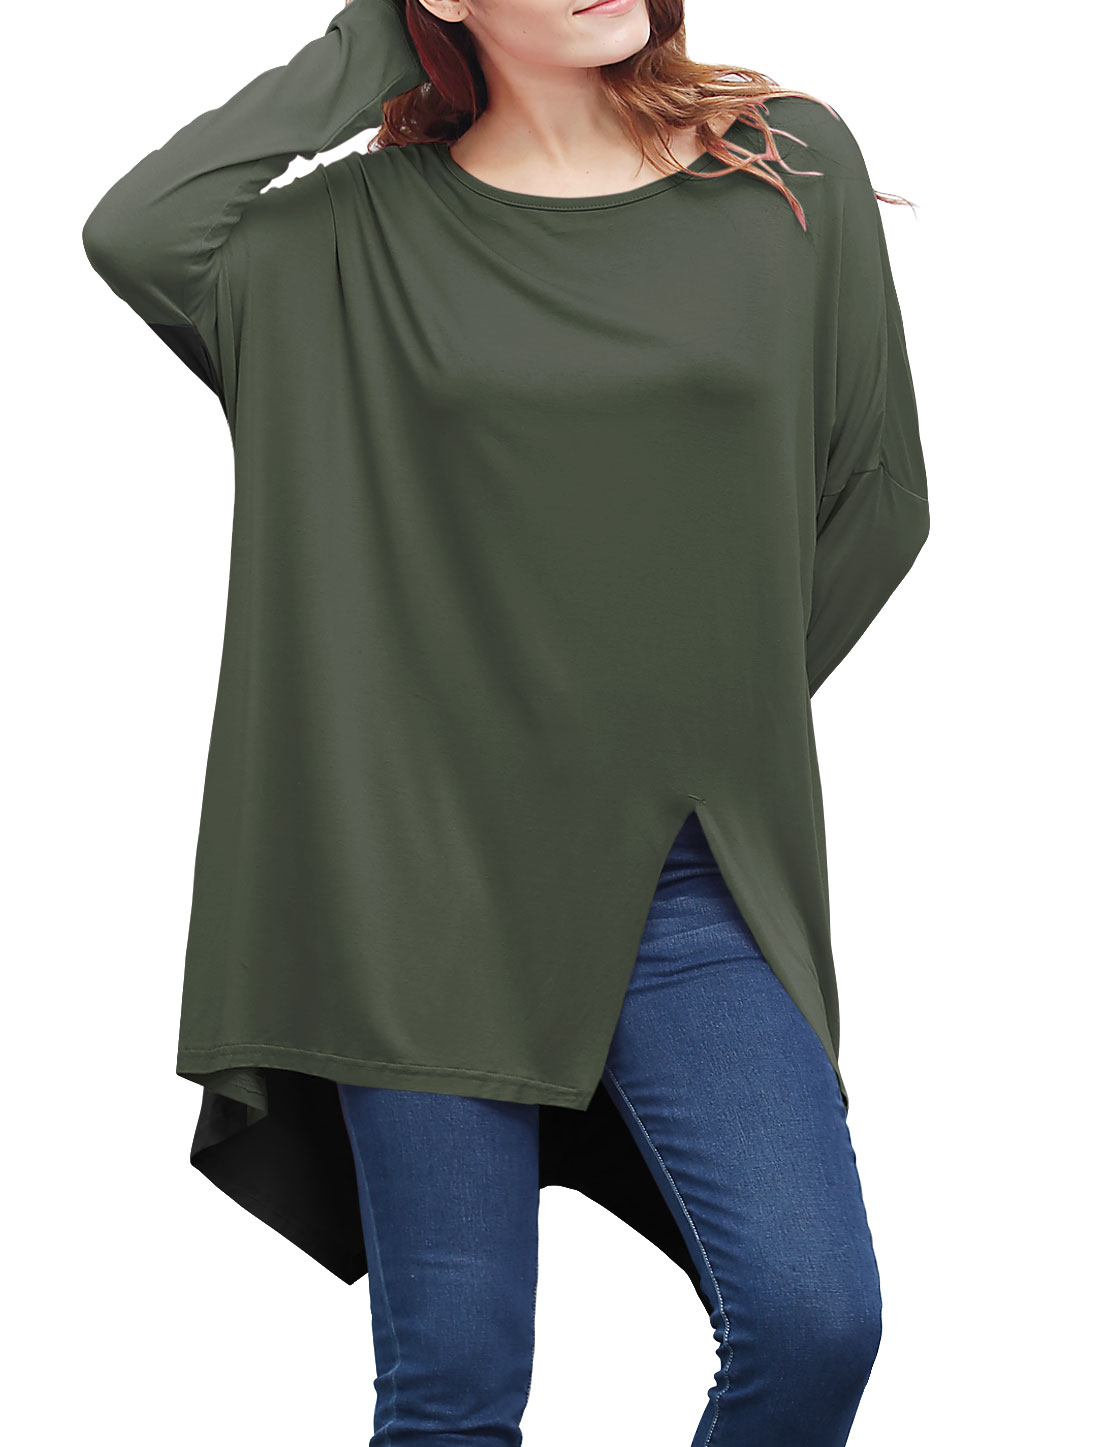 Women Batwing Sleeves Front Slit Oversized Tunic Top Green XL